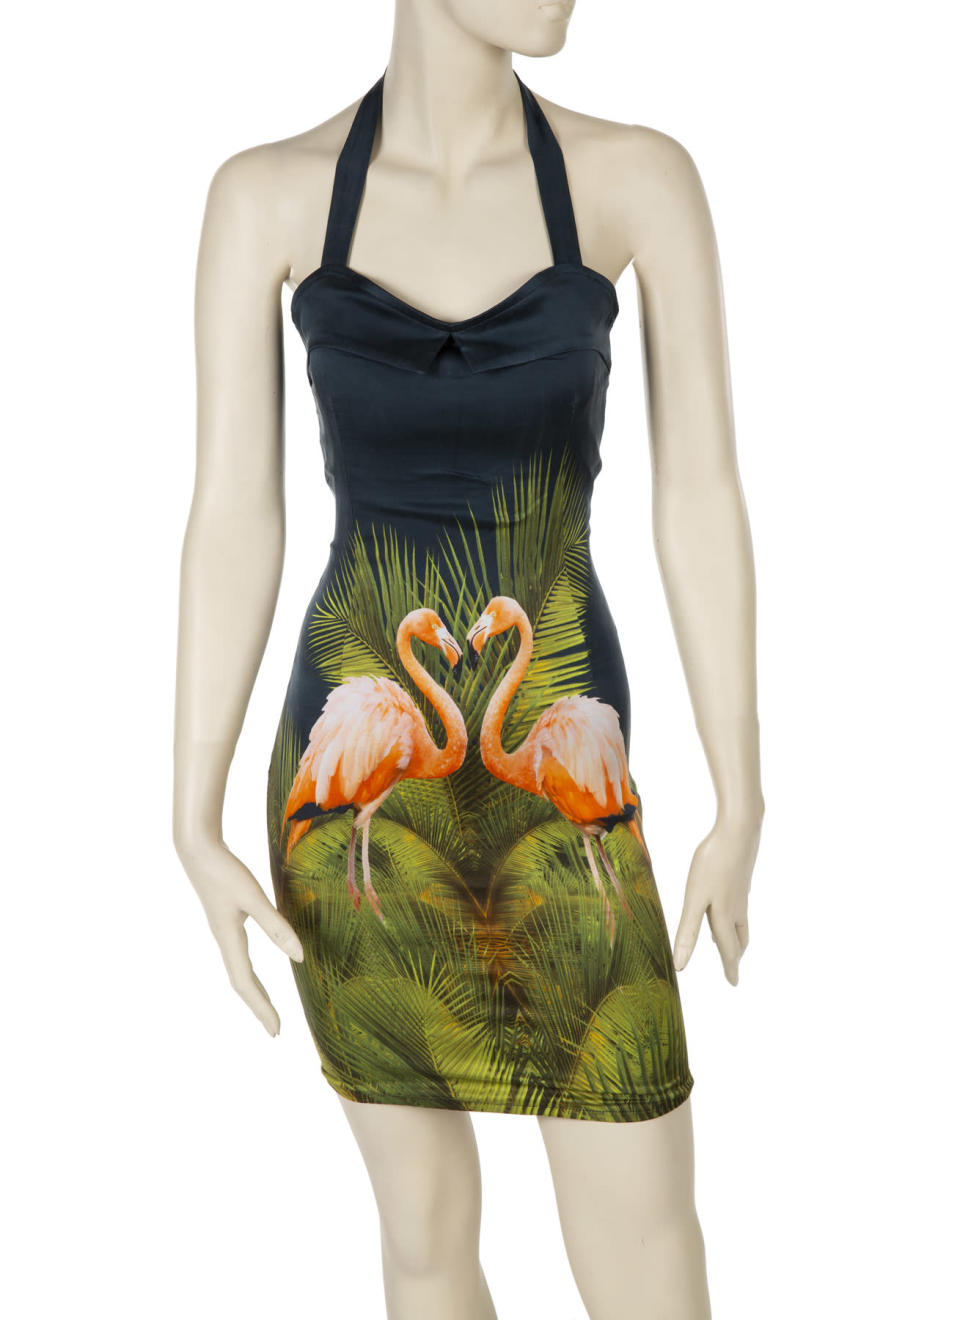 A dress made for Amy Winehouse going up for auction